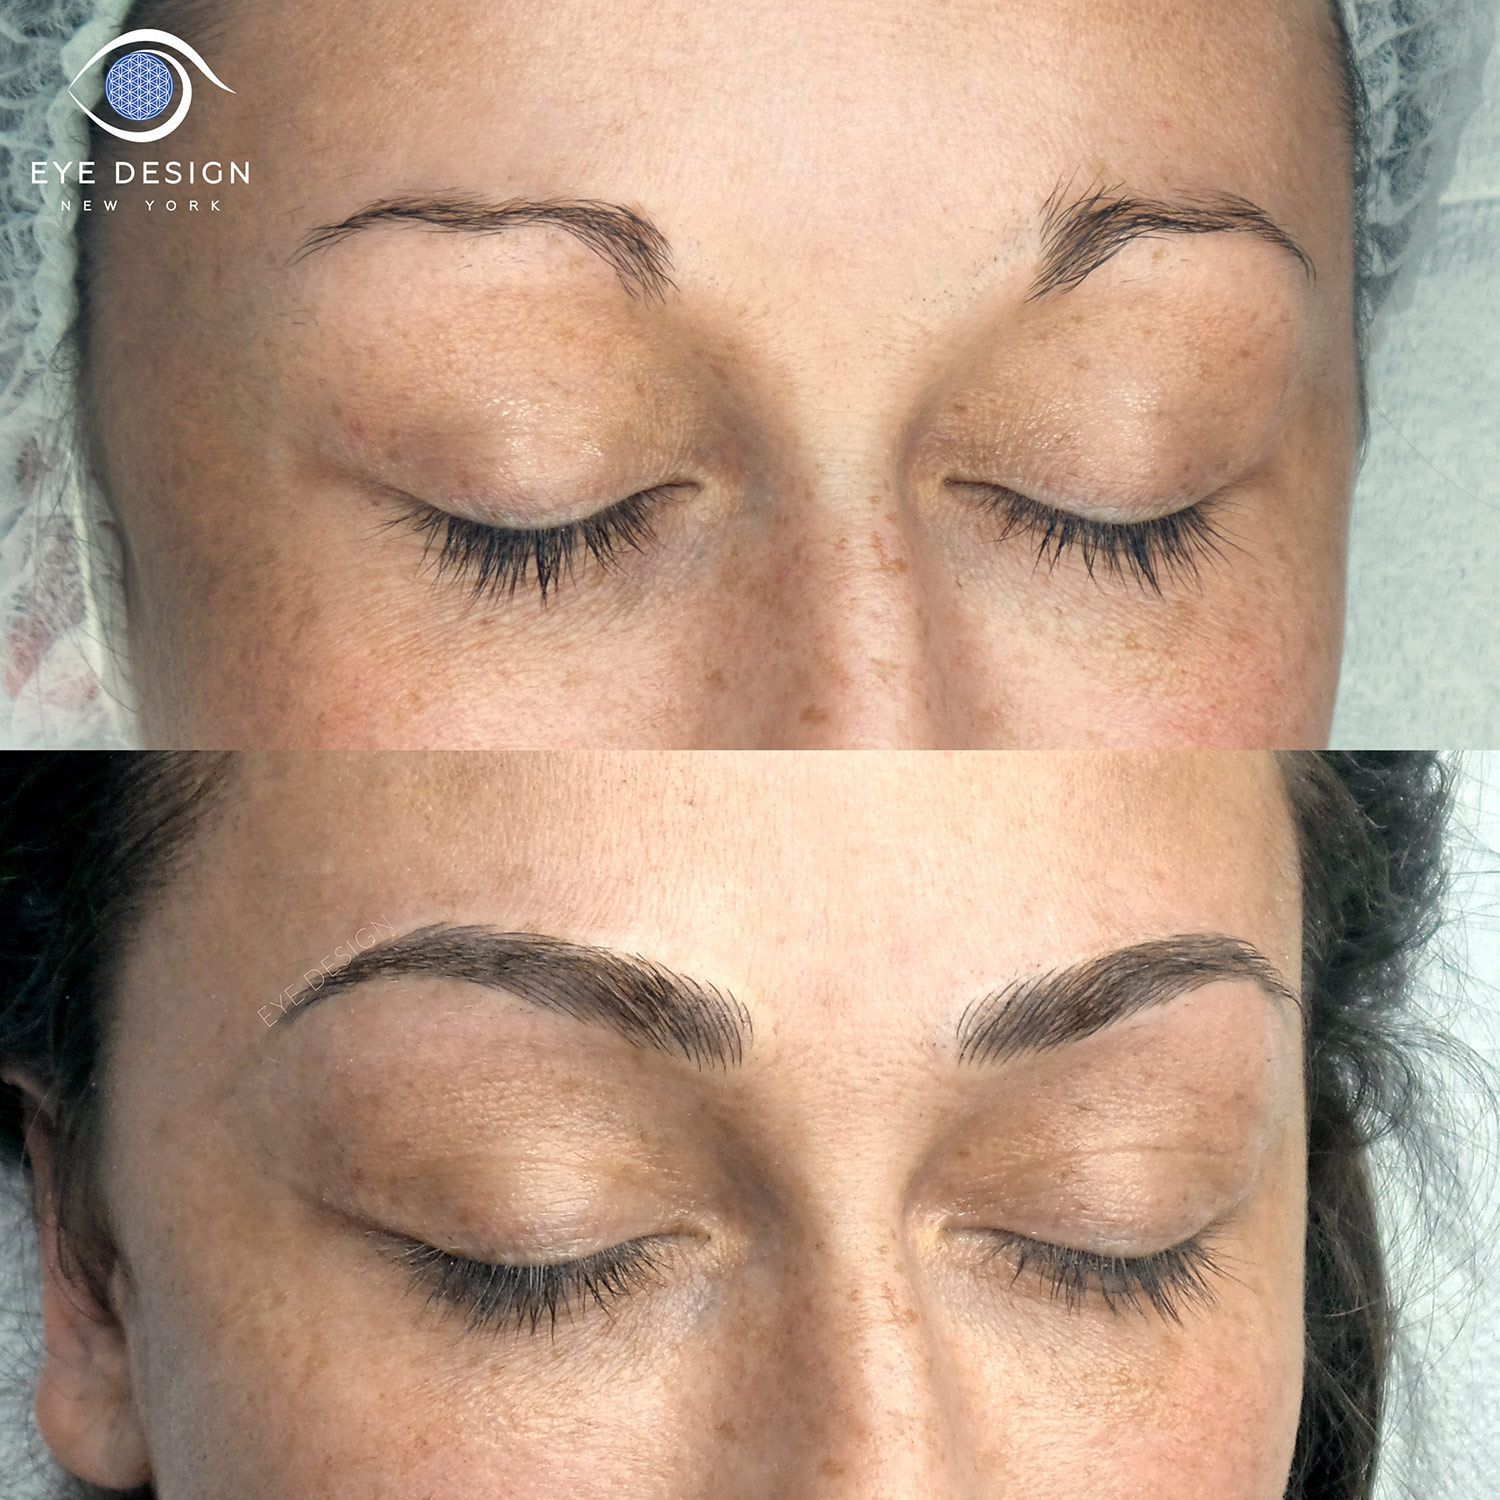 20160416 142250 EyebrowsNatural in 2020 Permanent